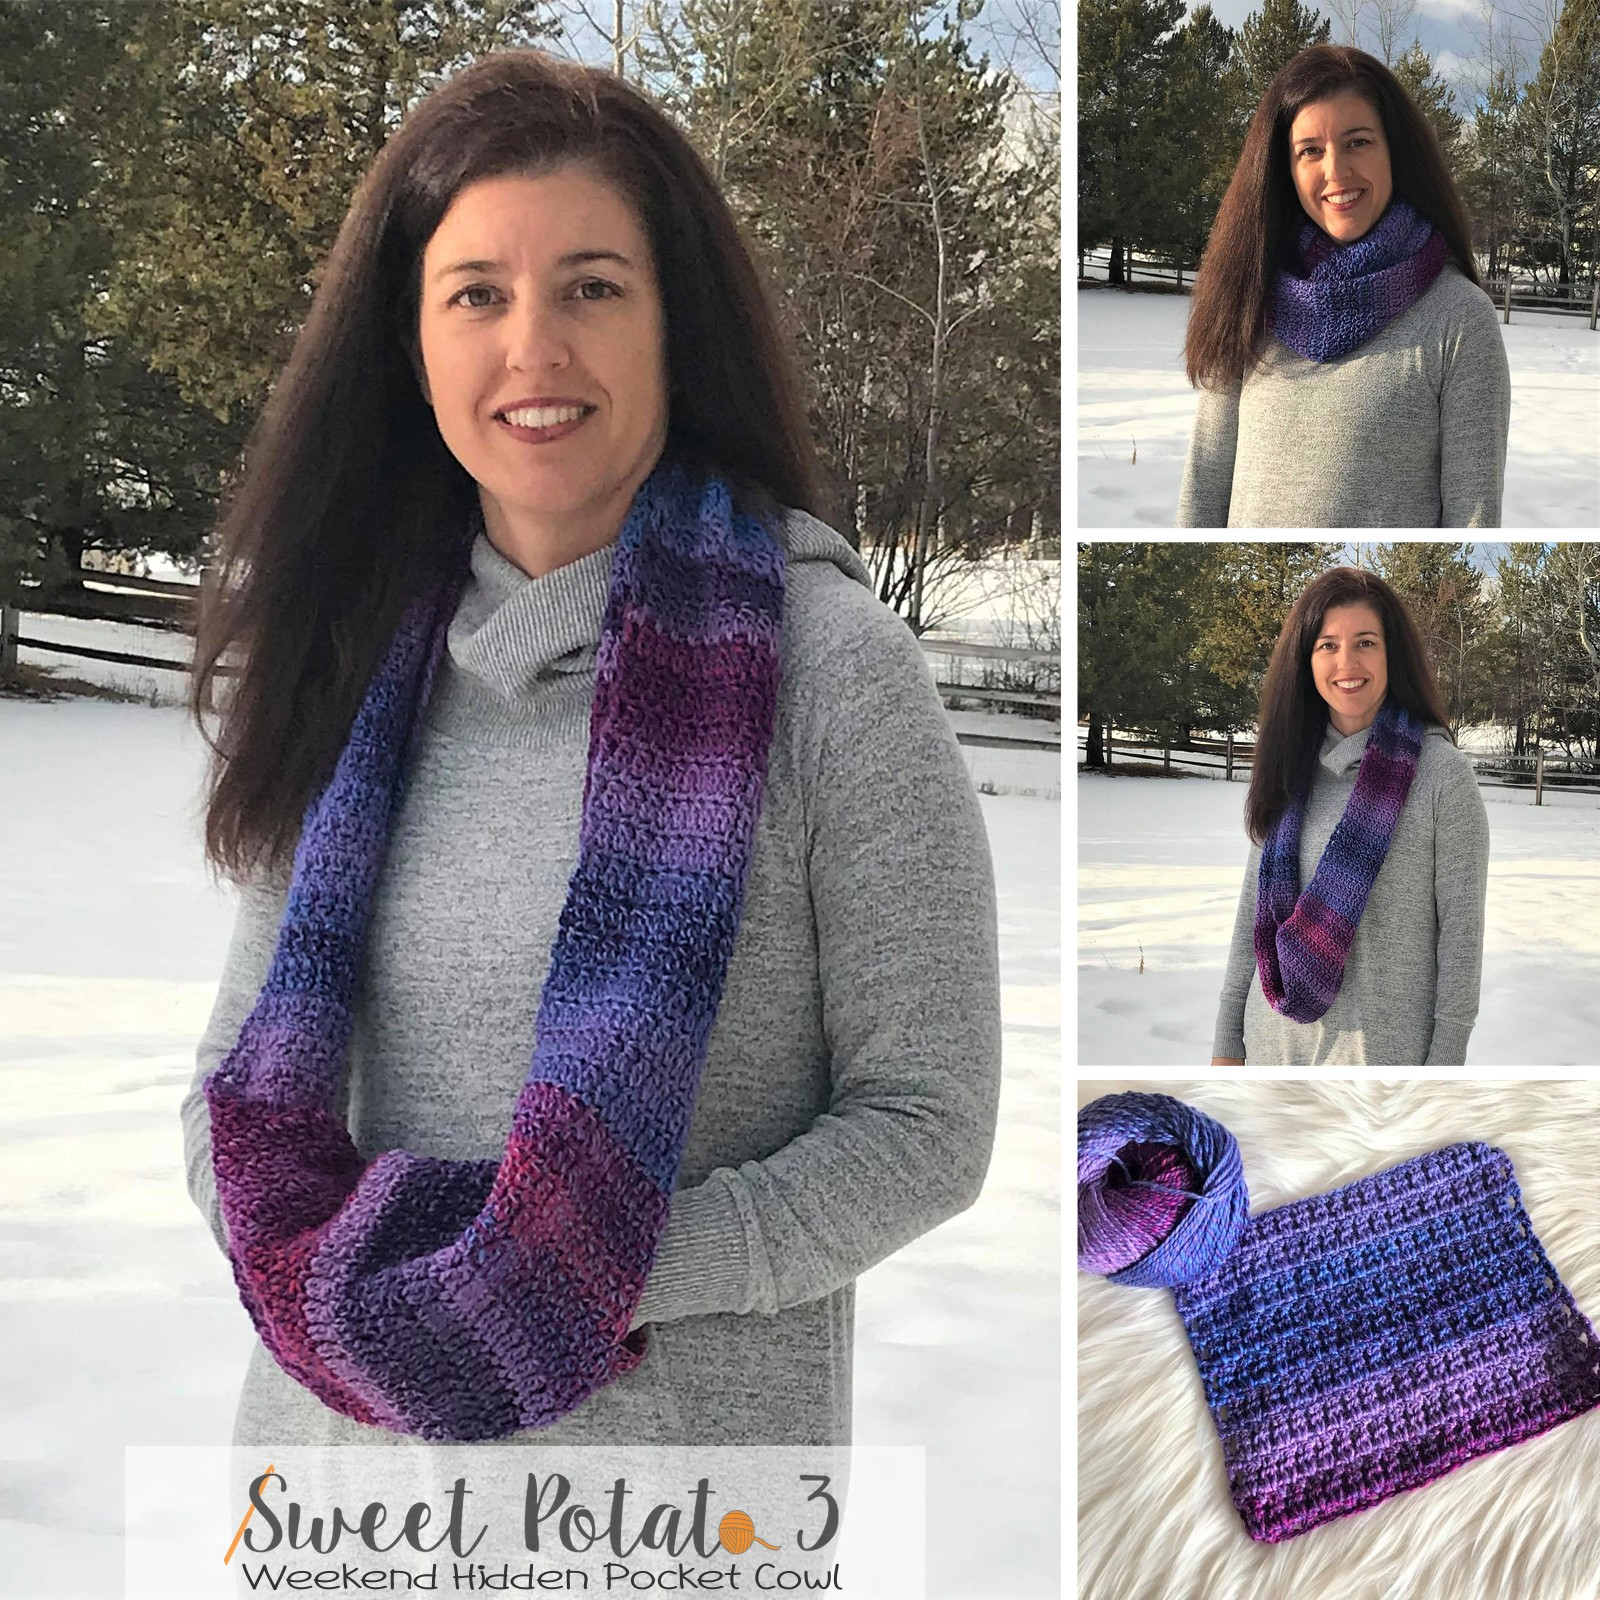 You are currently viewing Weekend Hidden Pocket Cowl – Crochet Pattern